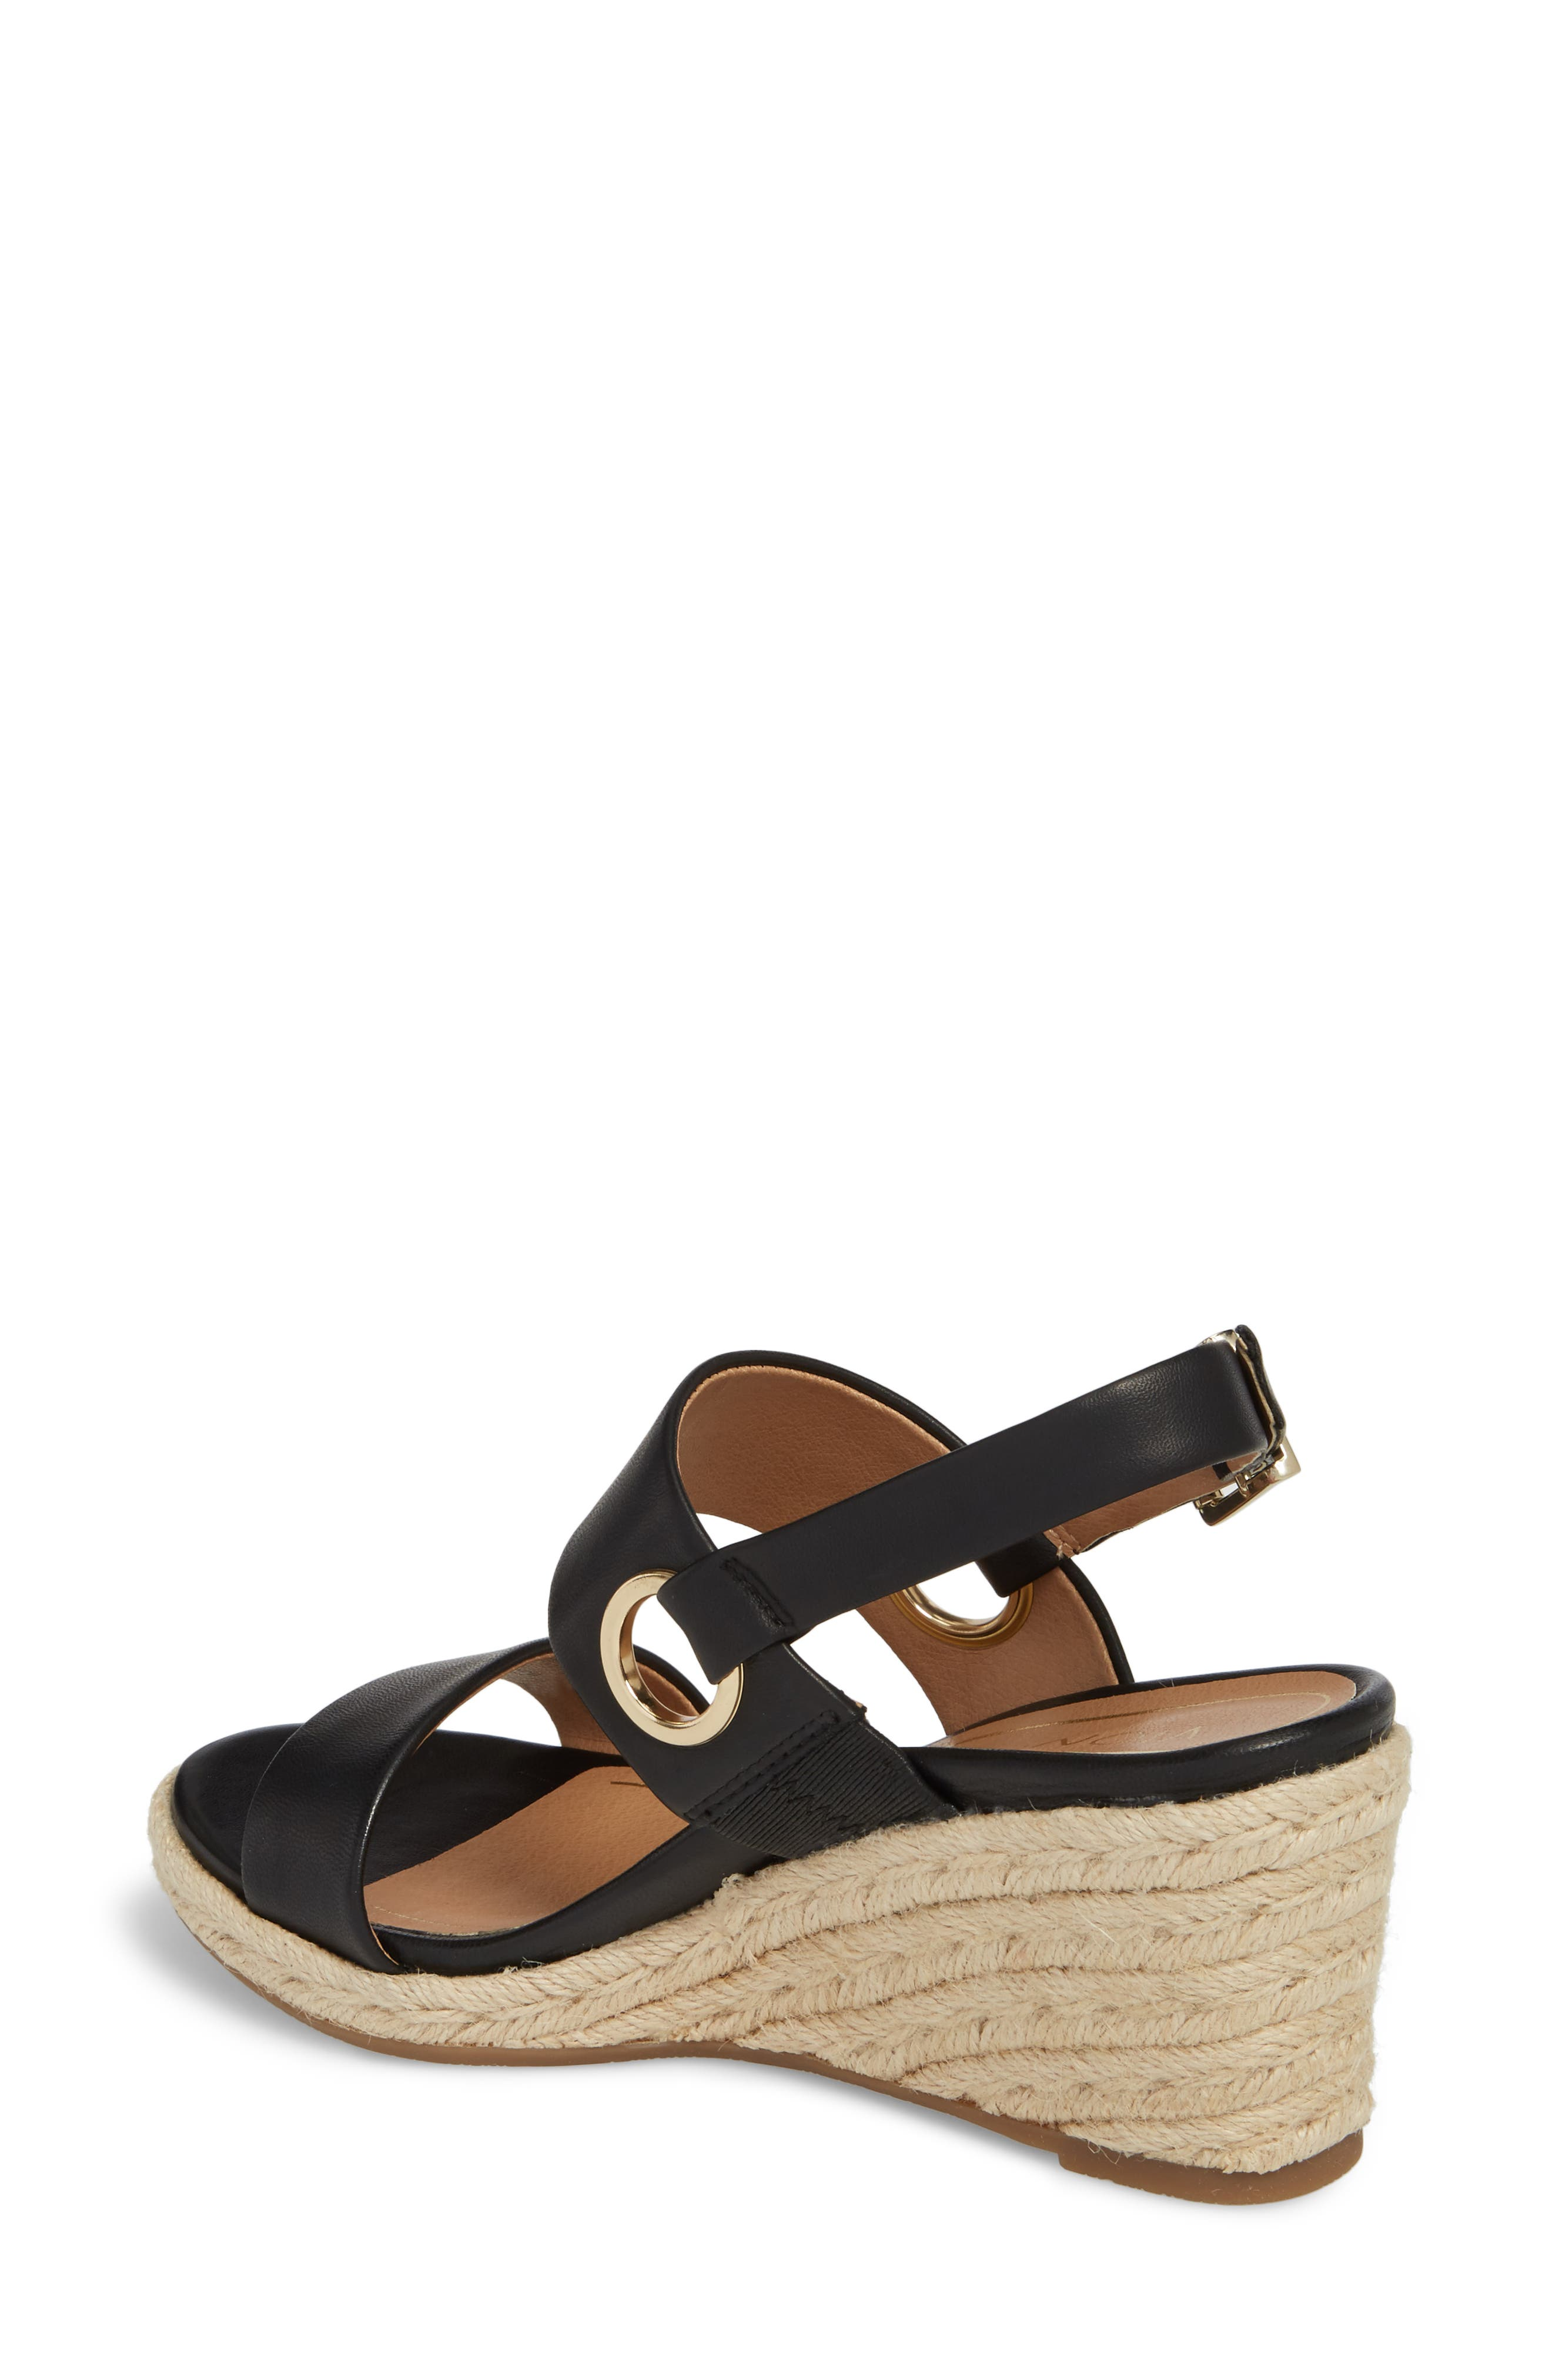 Vero Espadrille Wedge,                             Alternate thumbnail 2, color,                             BLACK LEATHER